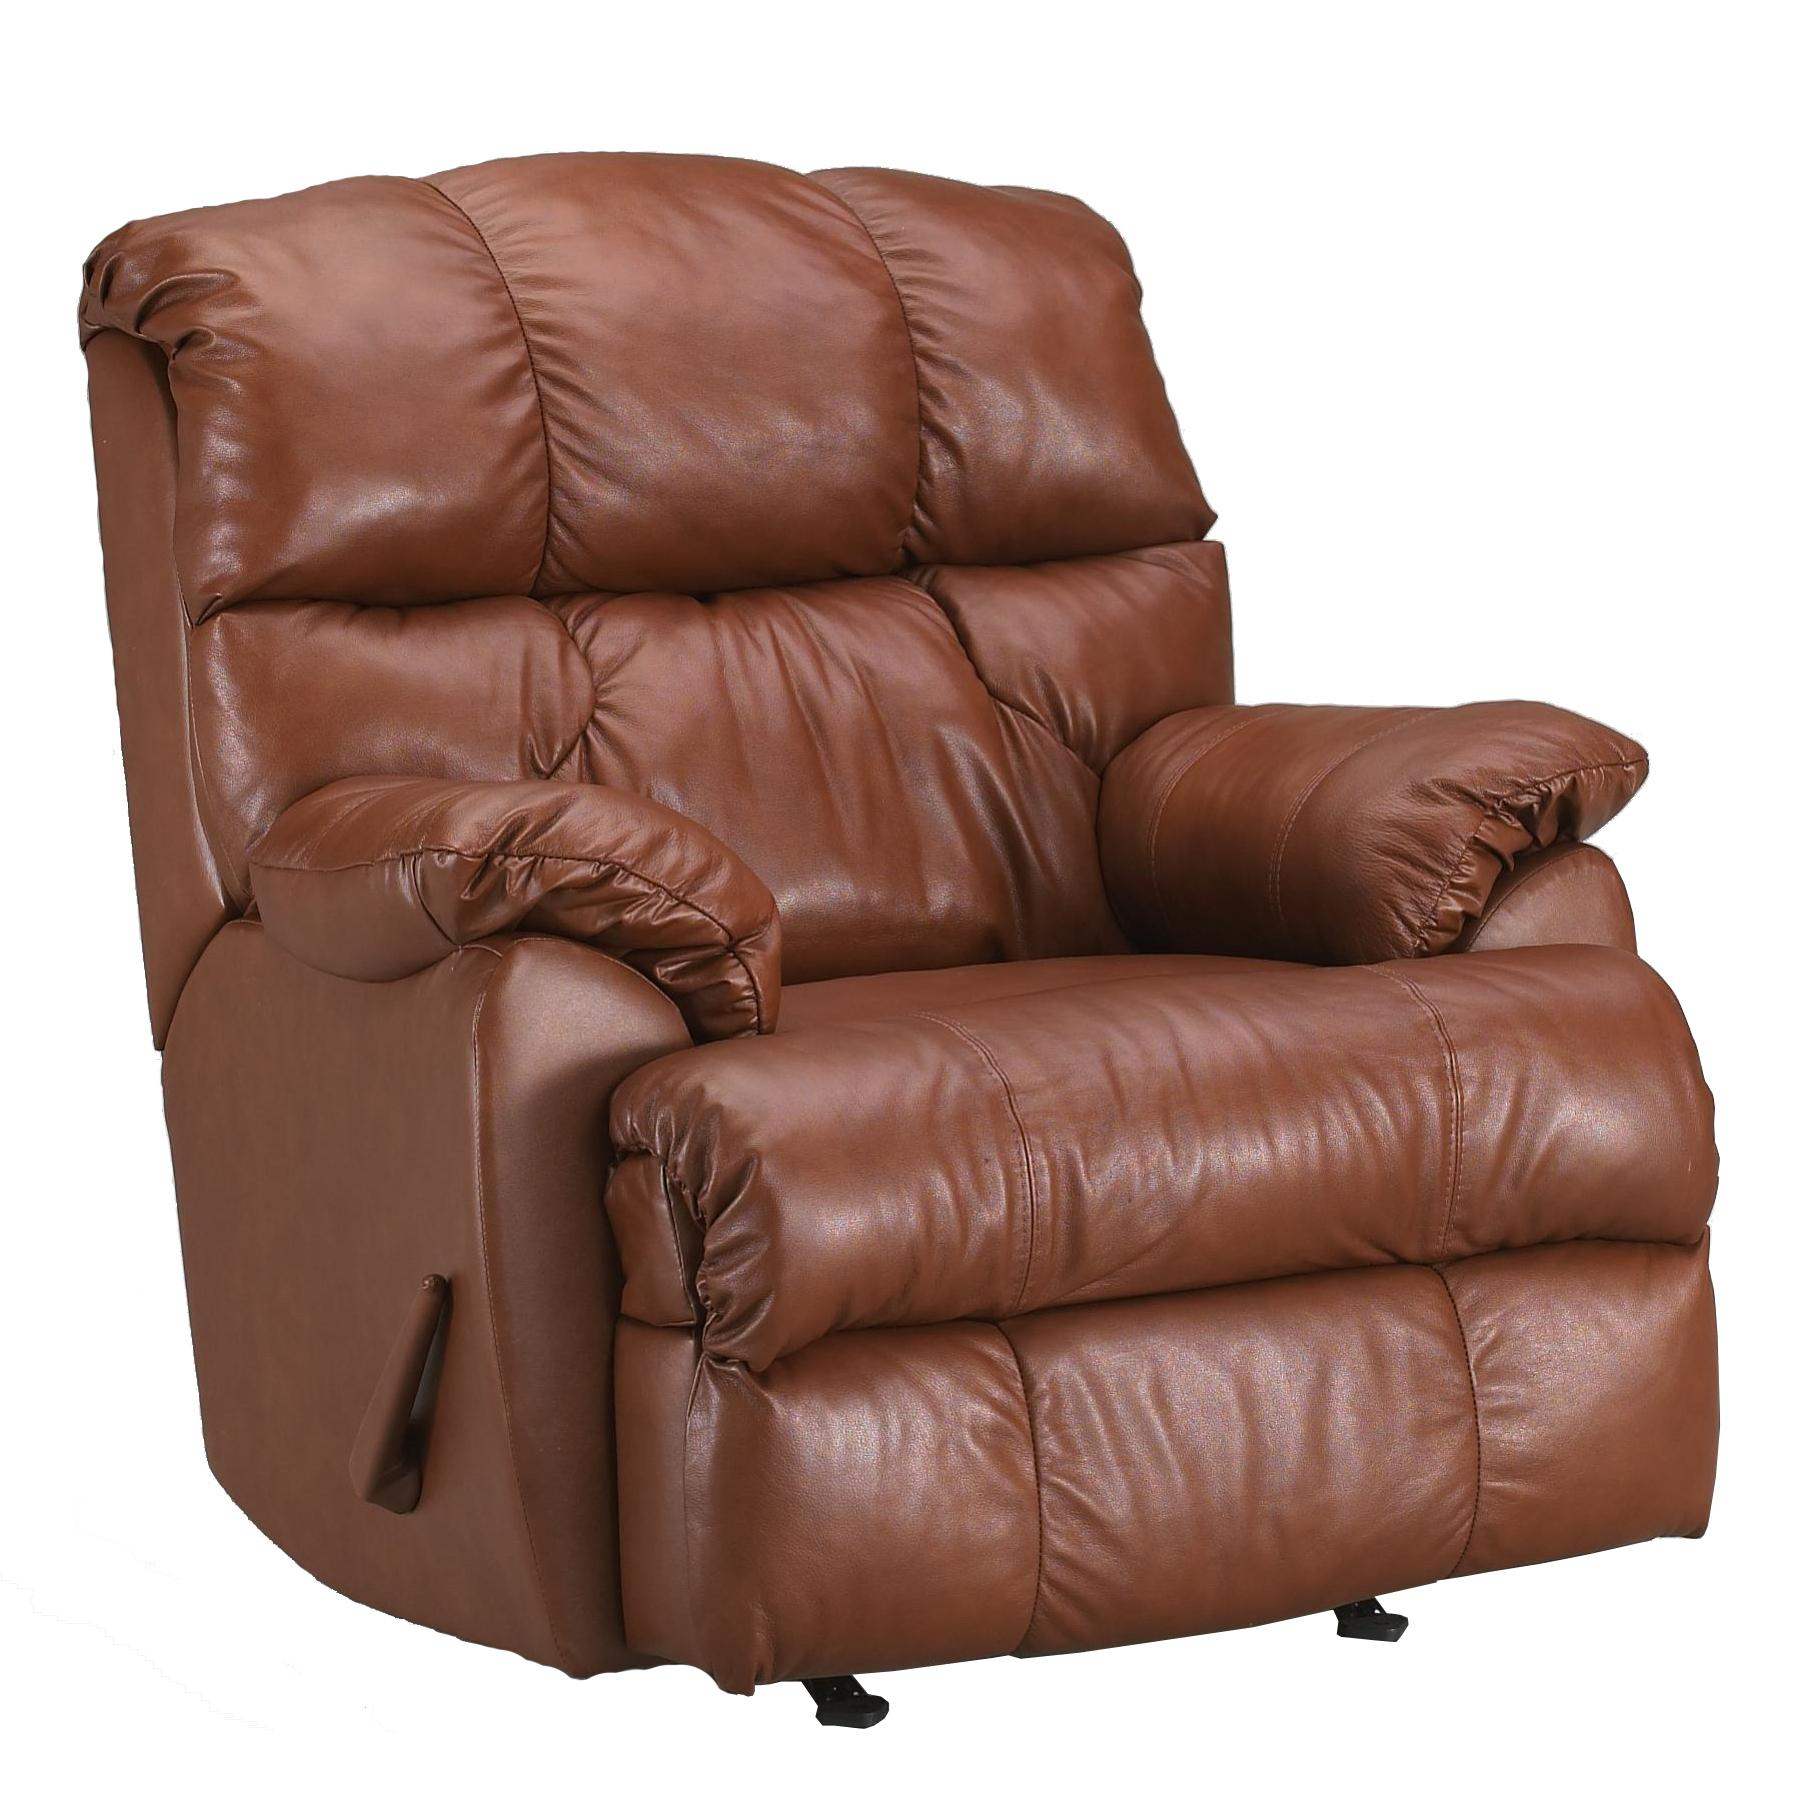 Recliner Rocking Chair Klaussner Recliners Rugby Rocking Recliner Chair Value